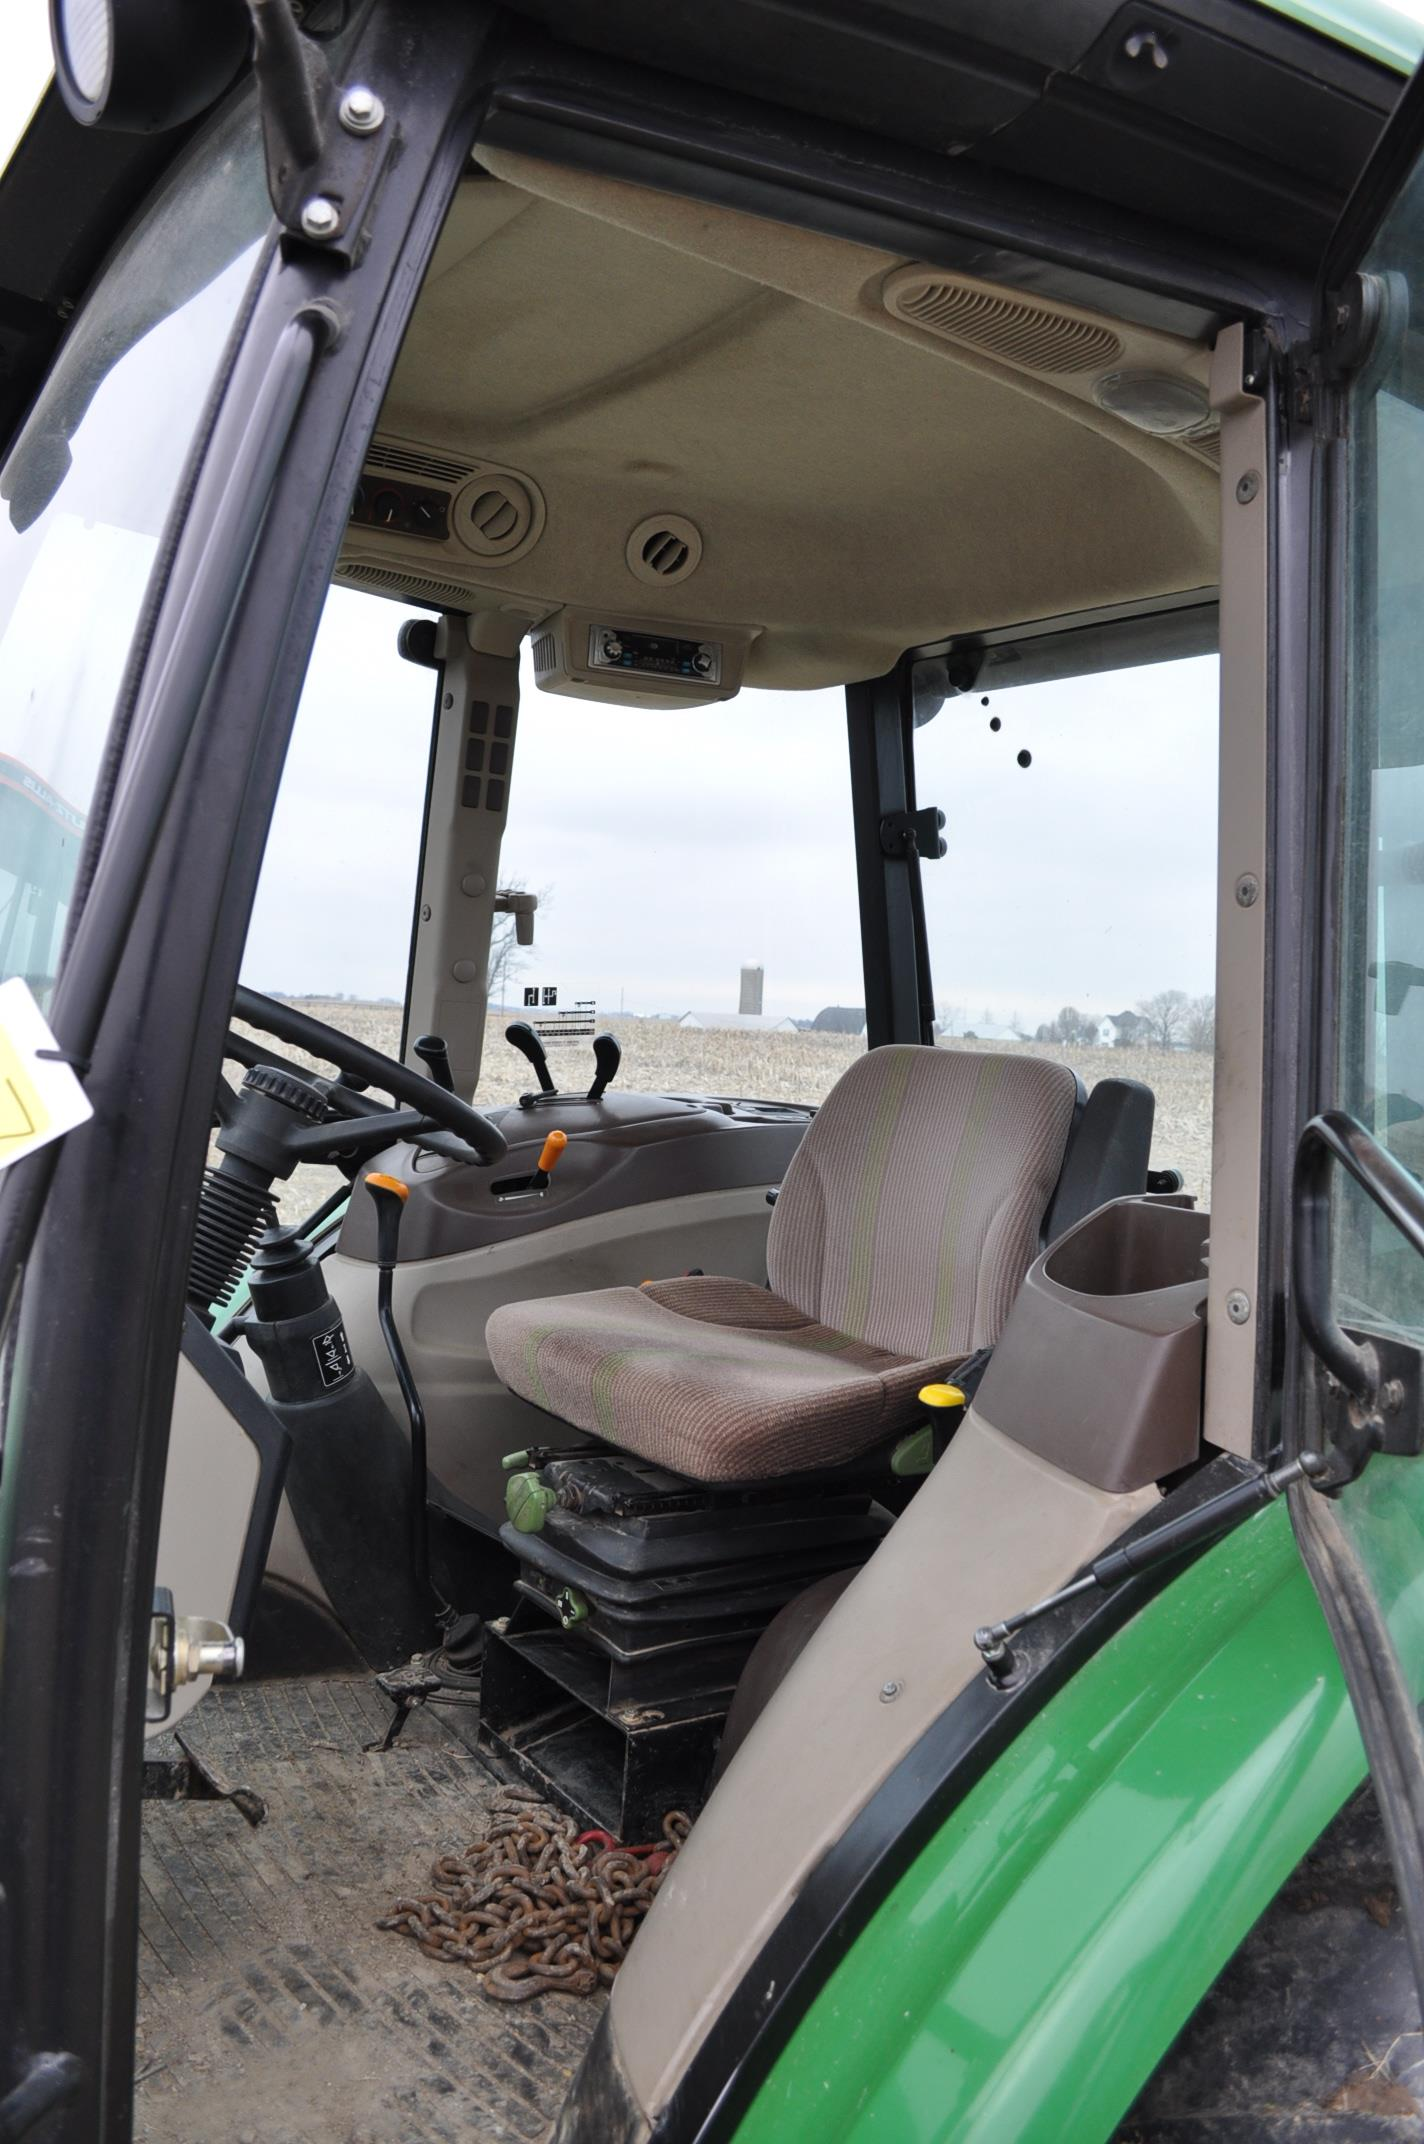 John Deere 5520 utility tractor, MFWD, 18.4 R 30 rear, 12.4-24 front, rear wheel wts, 2 hyd remotes, - Image 21 of 26